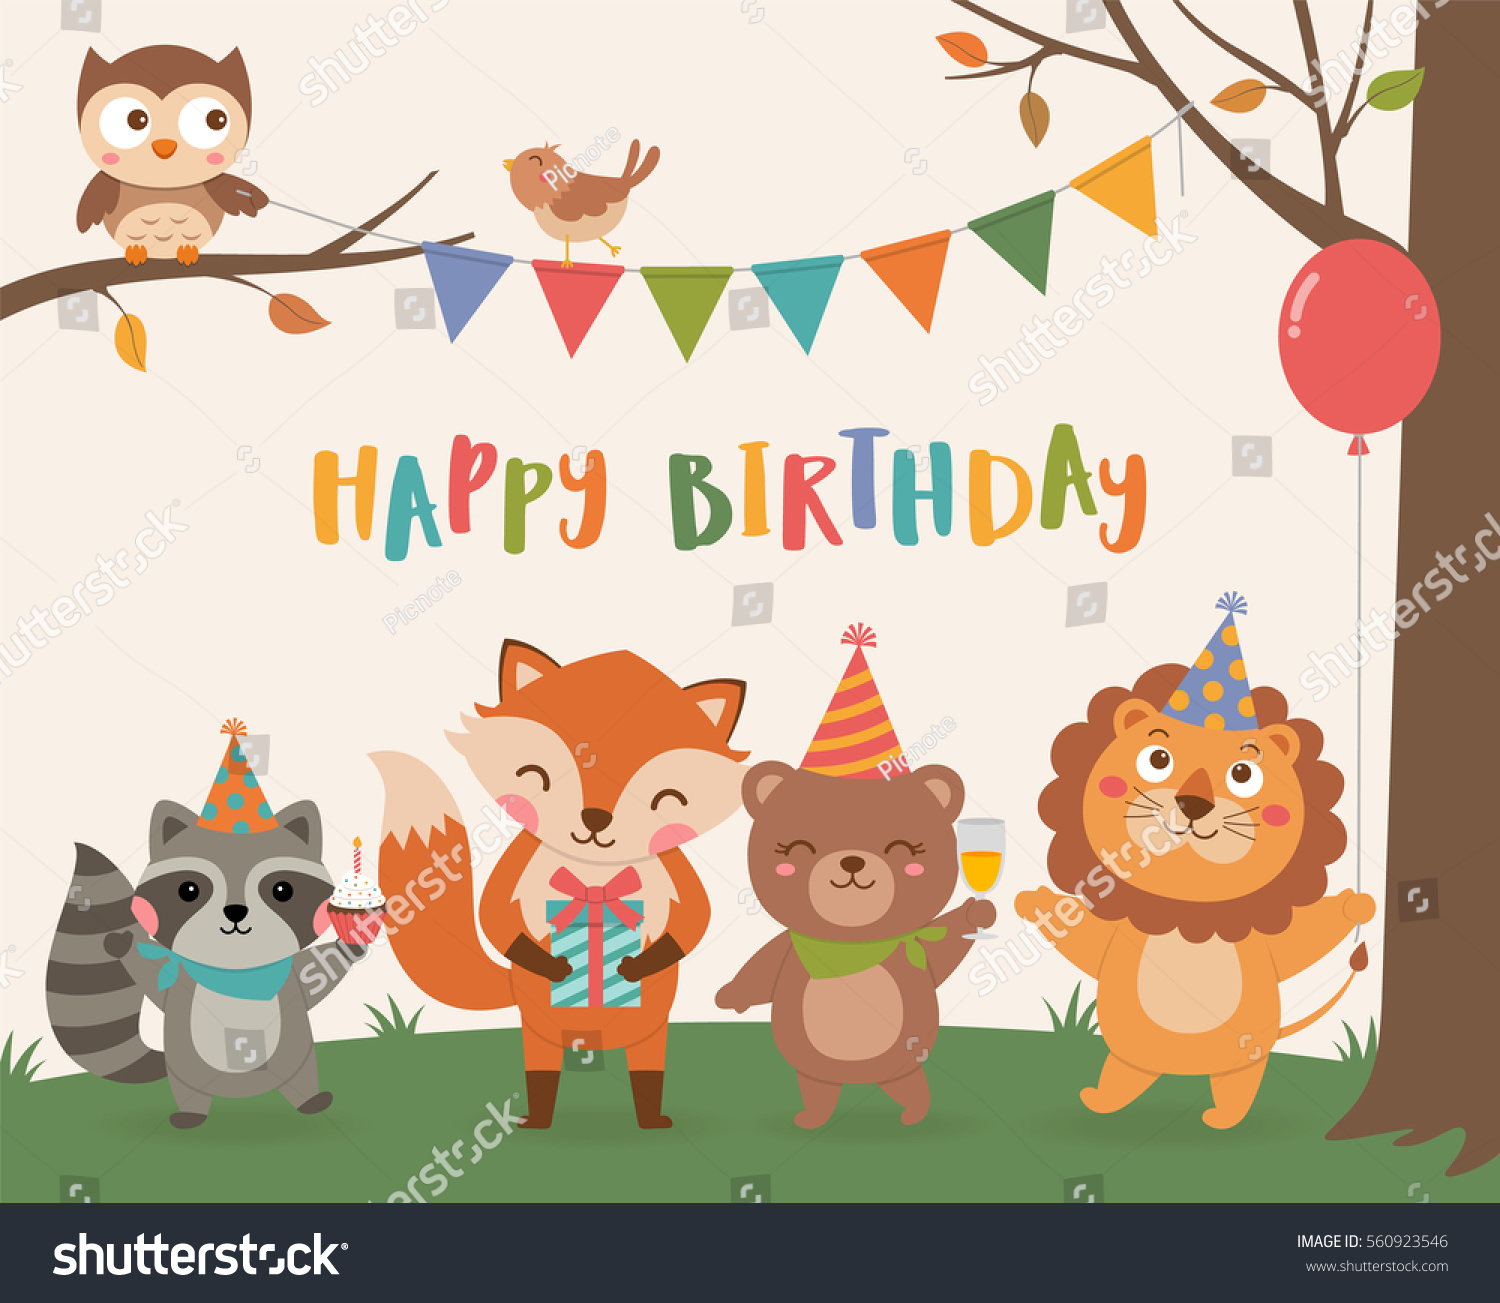 Cute Wildlife Animals Cartoon Illustration Birthday Stock Vector